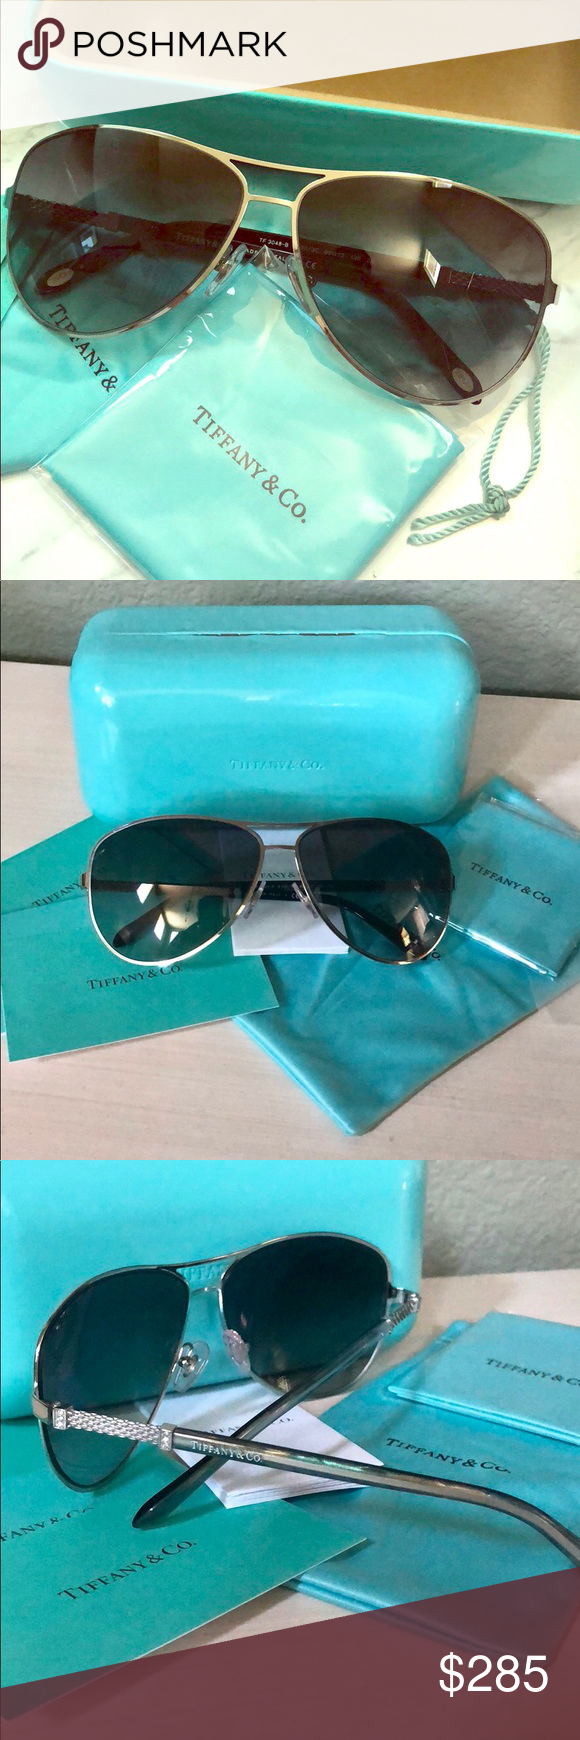 de7b7906ea79 Spotted while shopping on Poshmark  Tiffany   Co. aviator sunglasses!   poshmark  fashion  shopping  style  Tiffany   Co.  Accessories